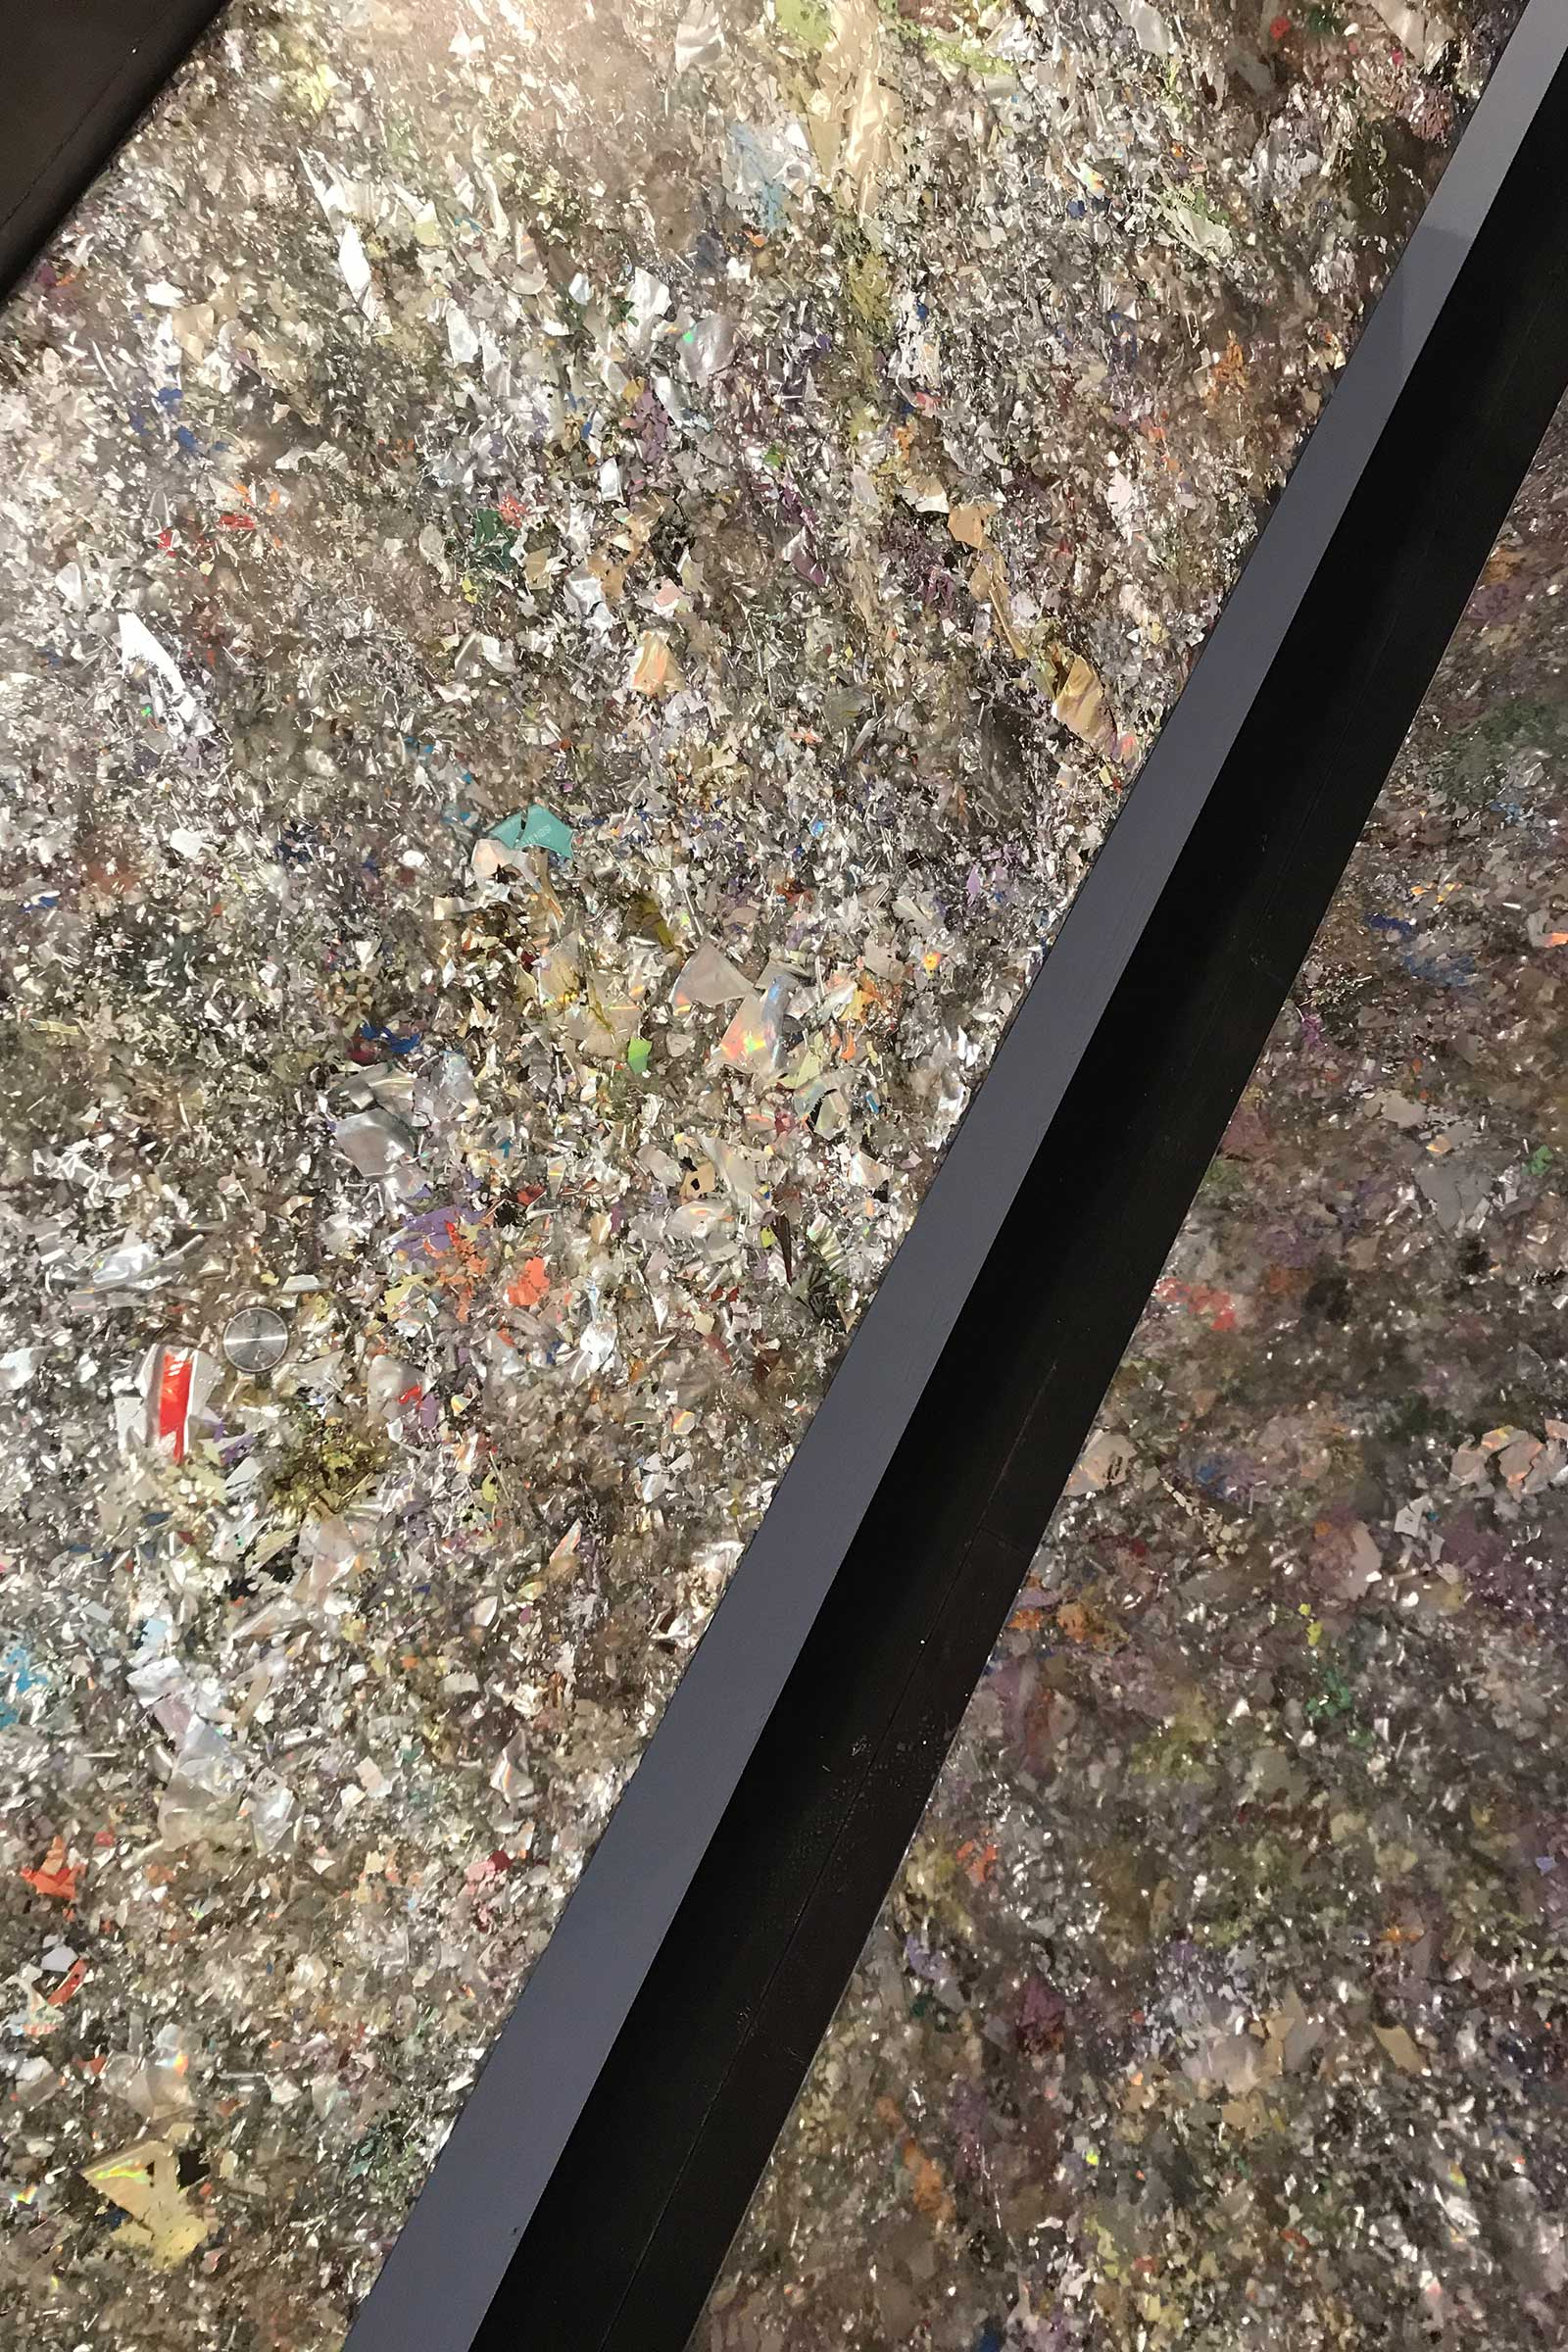 A detail of Dirk Vanderkooij's holographic bench made from fragmented CD-roms and oyster shells set in resin. Images courtesy of Potato Head